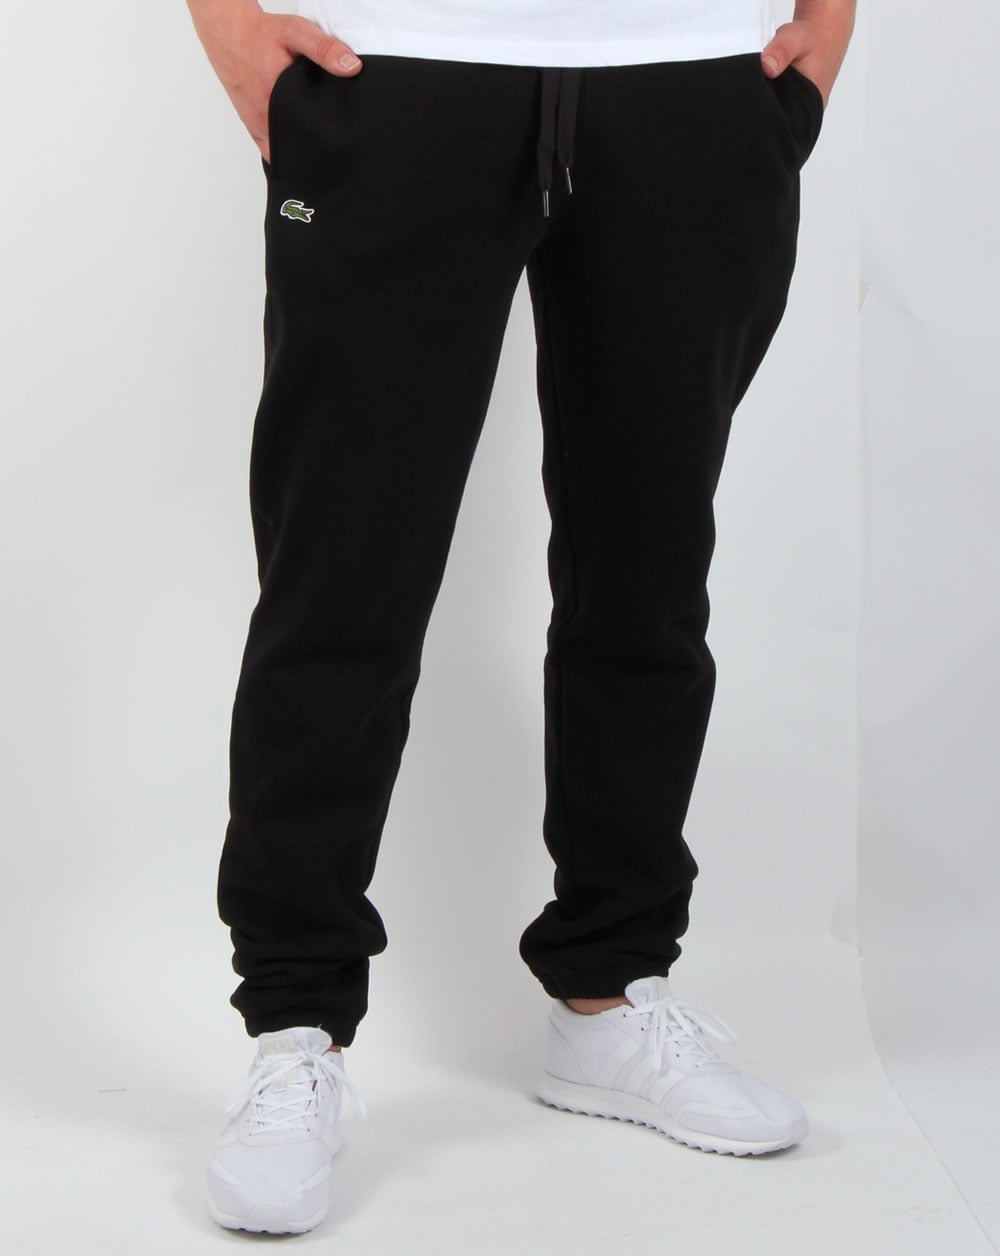 8213e10a8 Lacoste Lacoste Fleece Track Pants Black